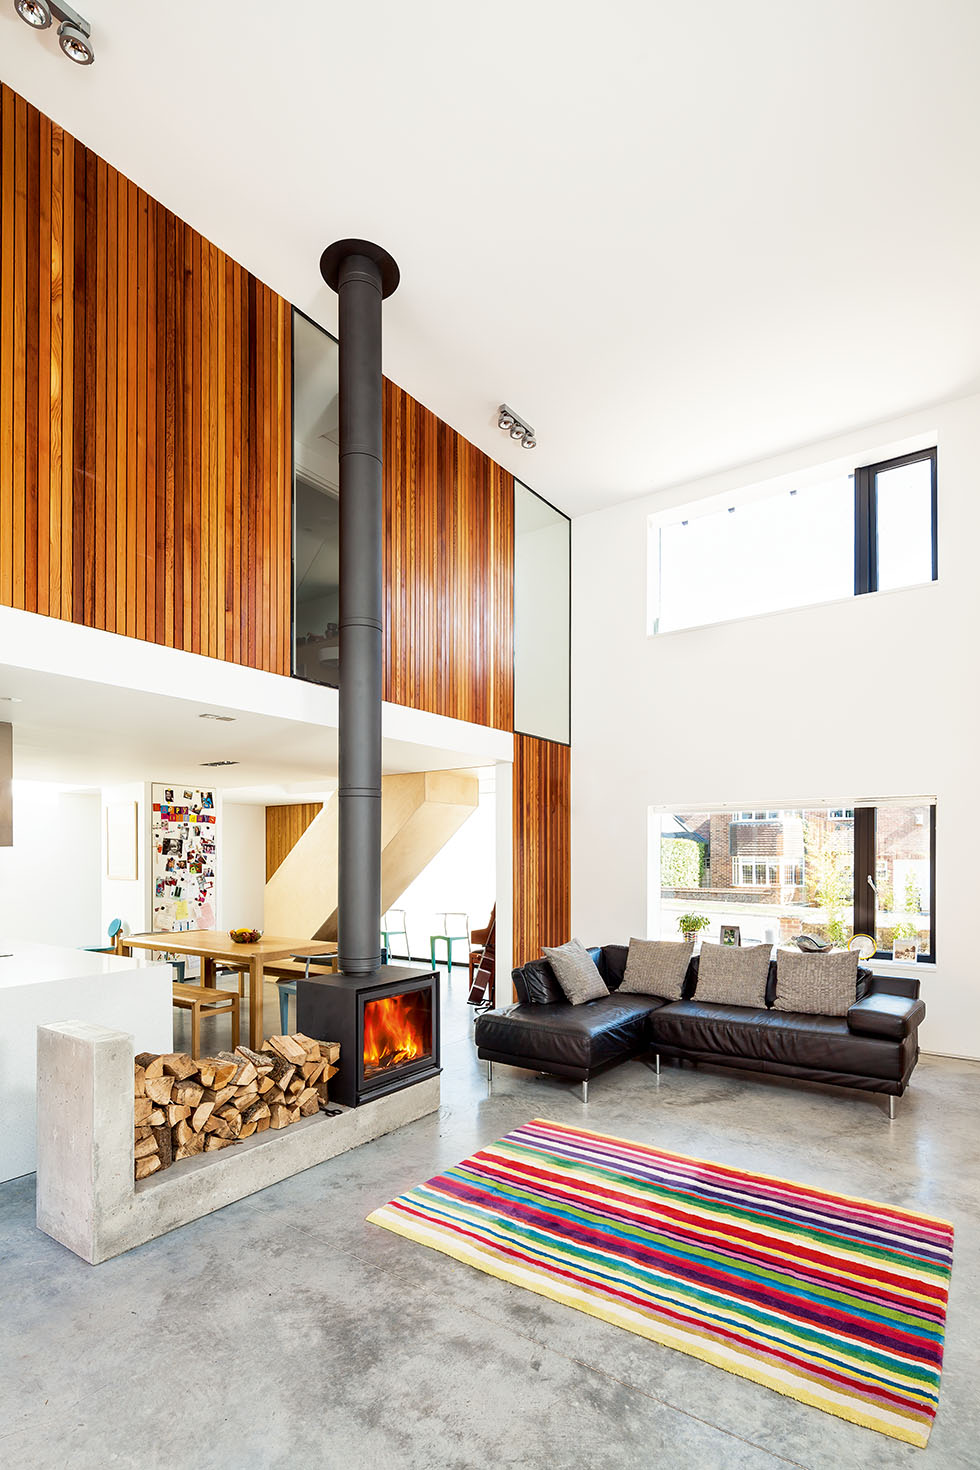 module-wood-clad-remodel-woodburner-living-space